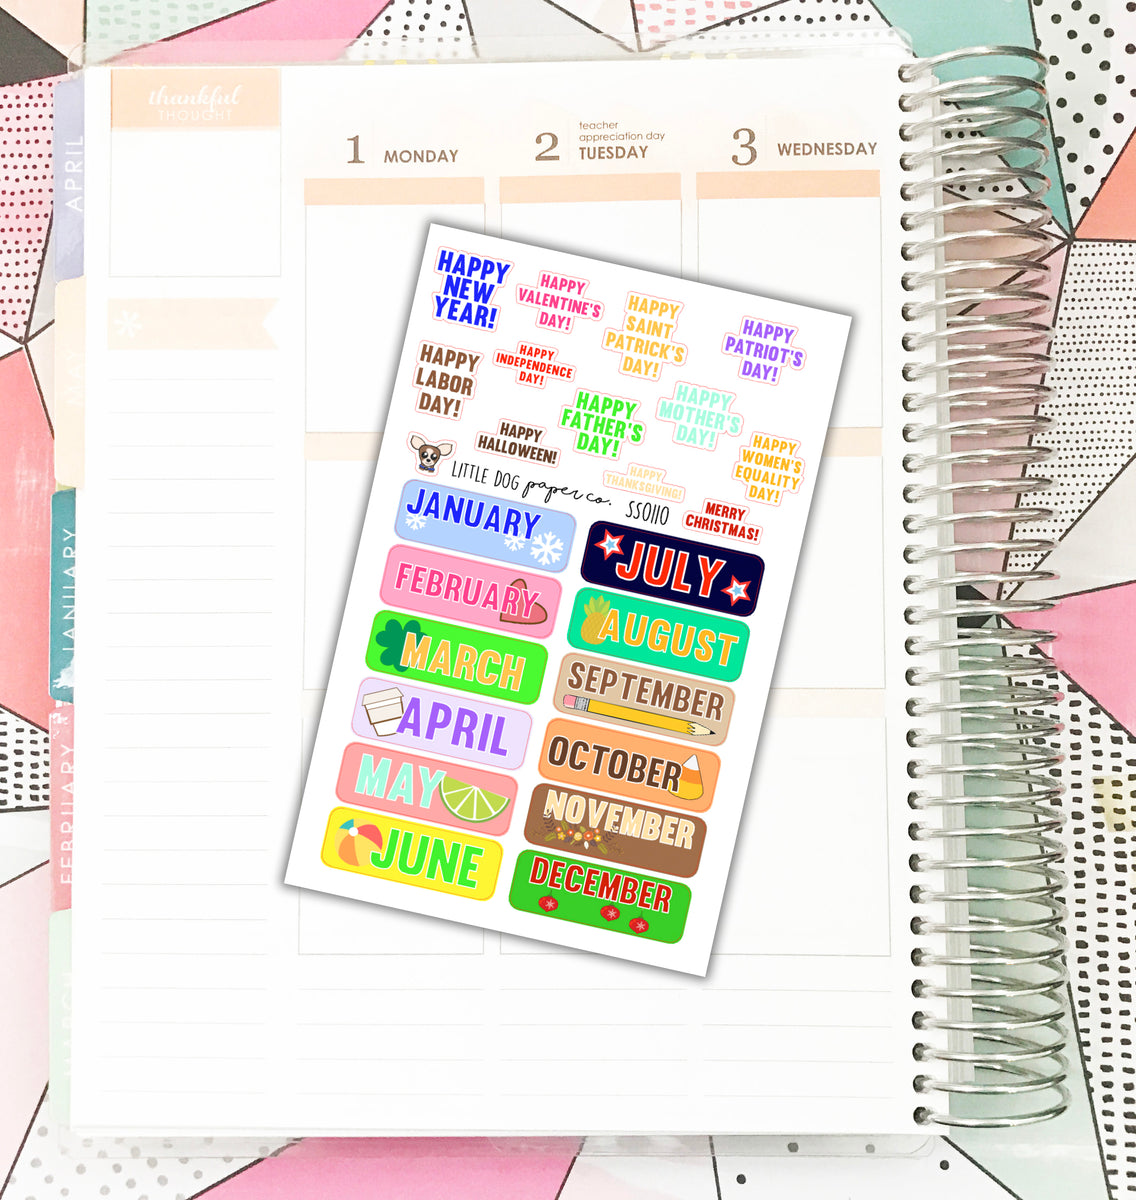 Ss0110 personal planner stickers made for personal planner calen little dog paper co